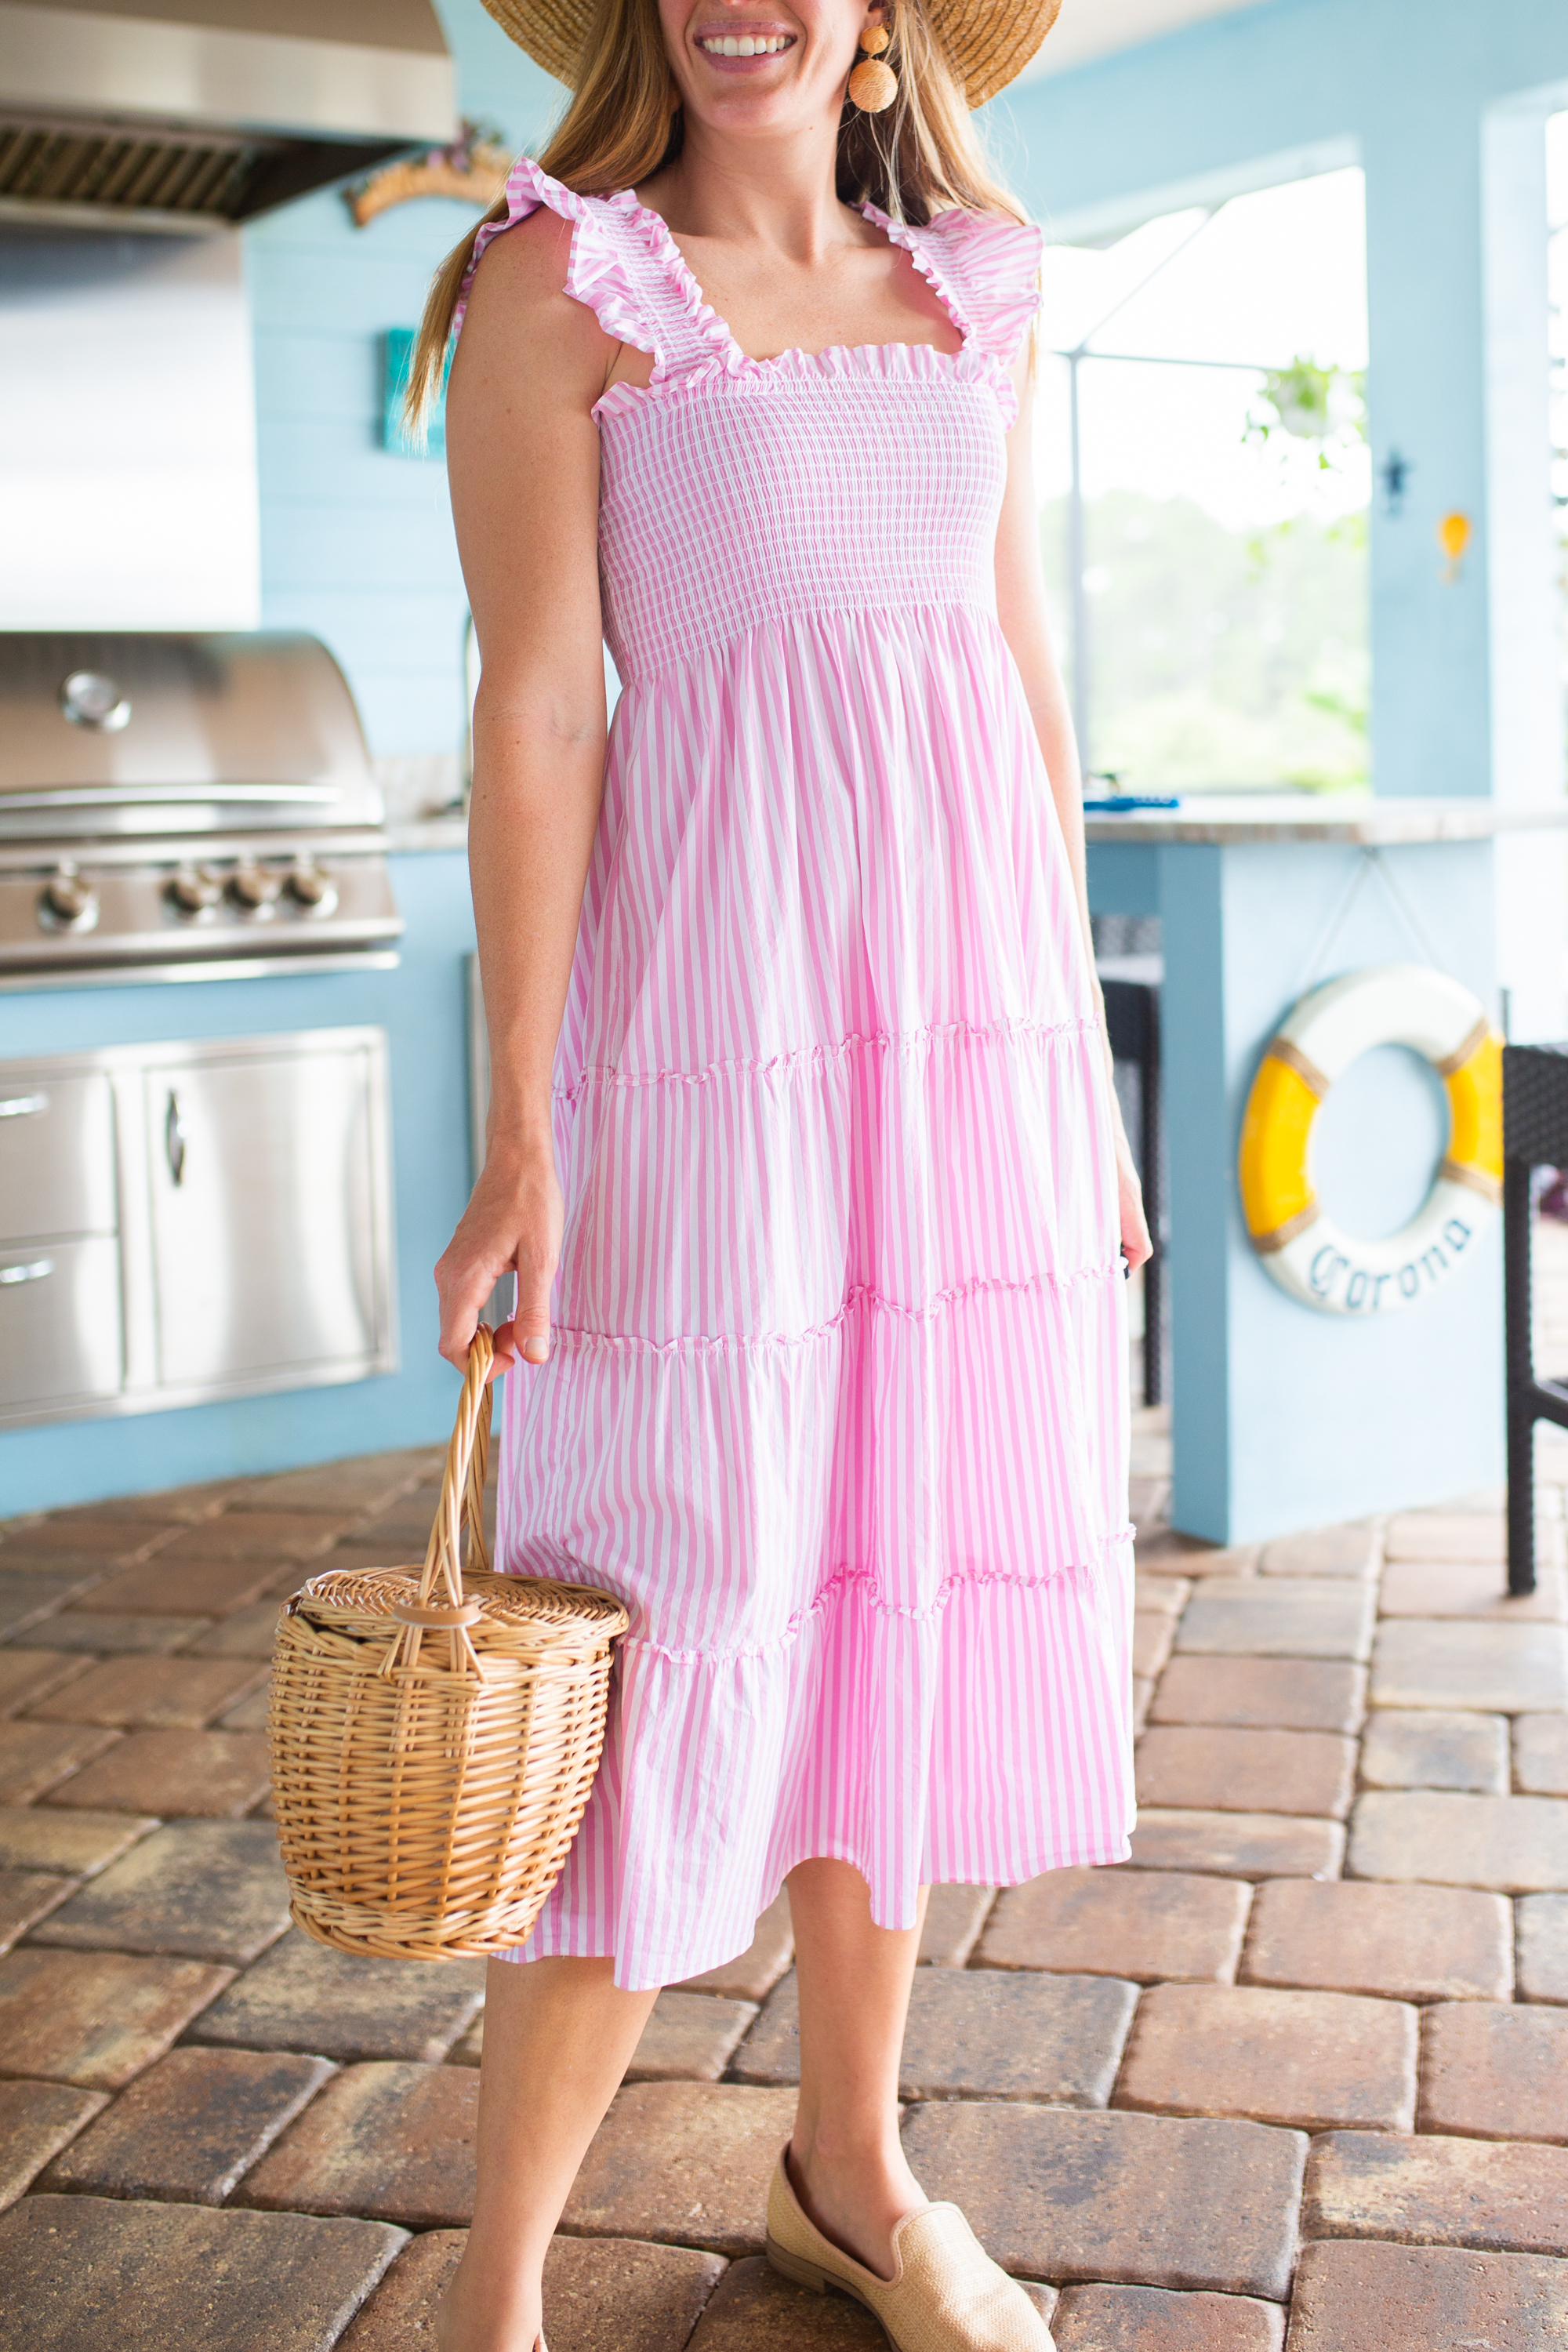 woman wearing pink dress for Nap Dress Review and holding a weaved bag